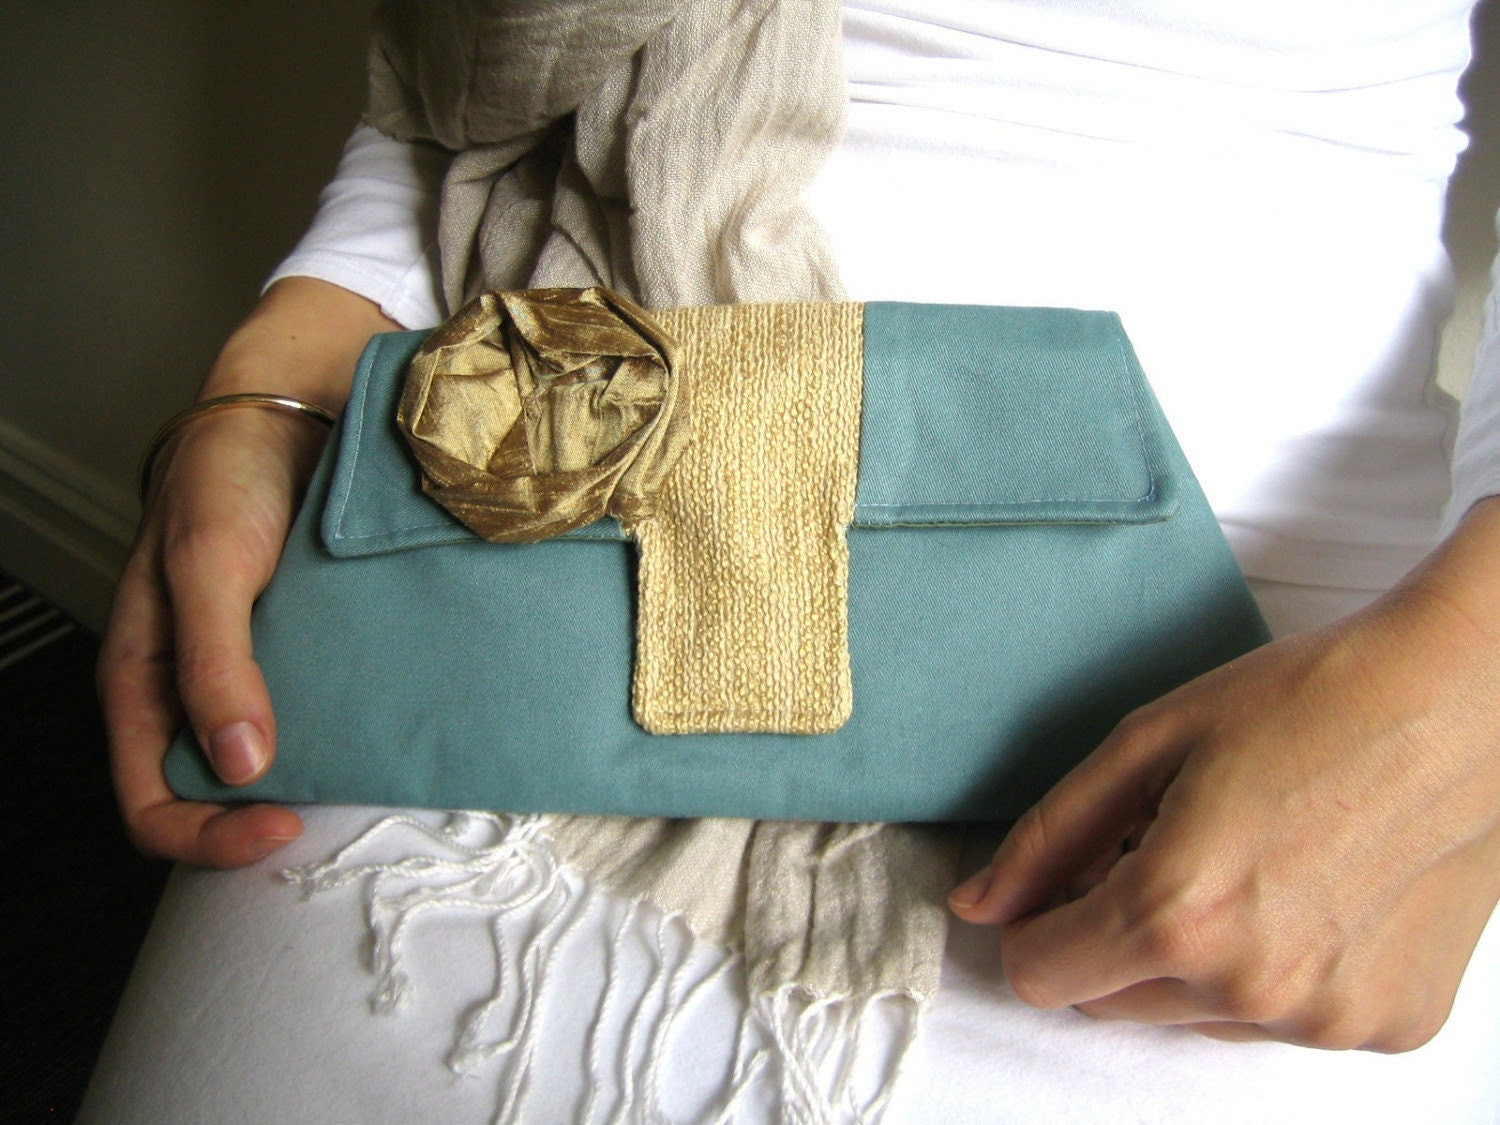 The Jacqueline Clutch in Teal and Gold